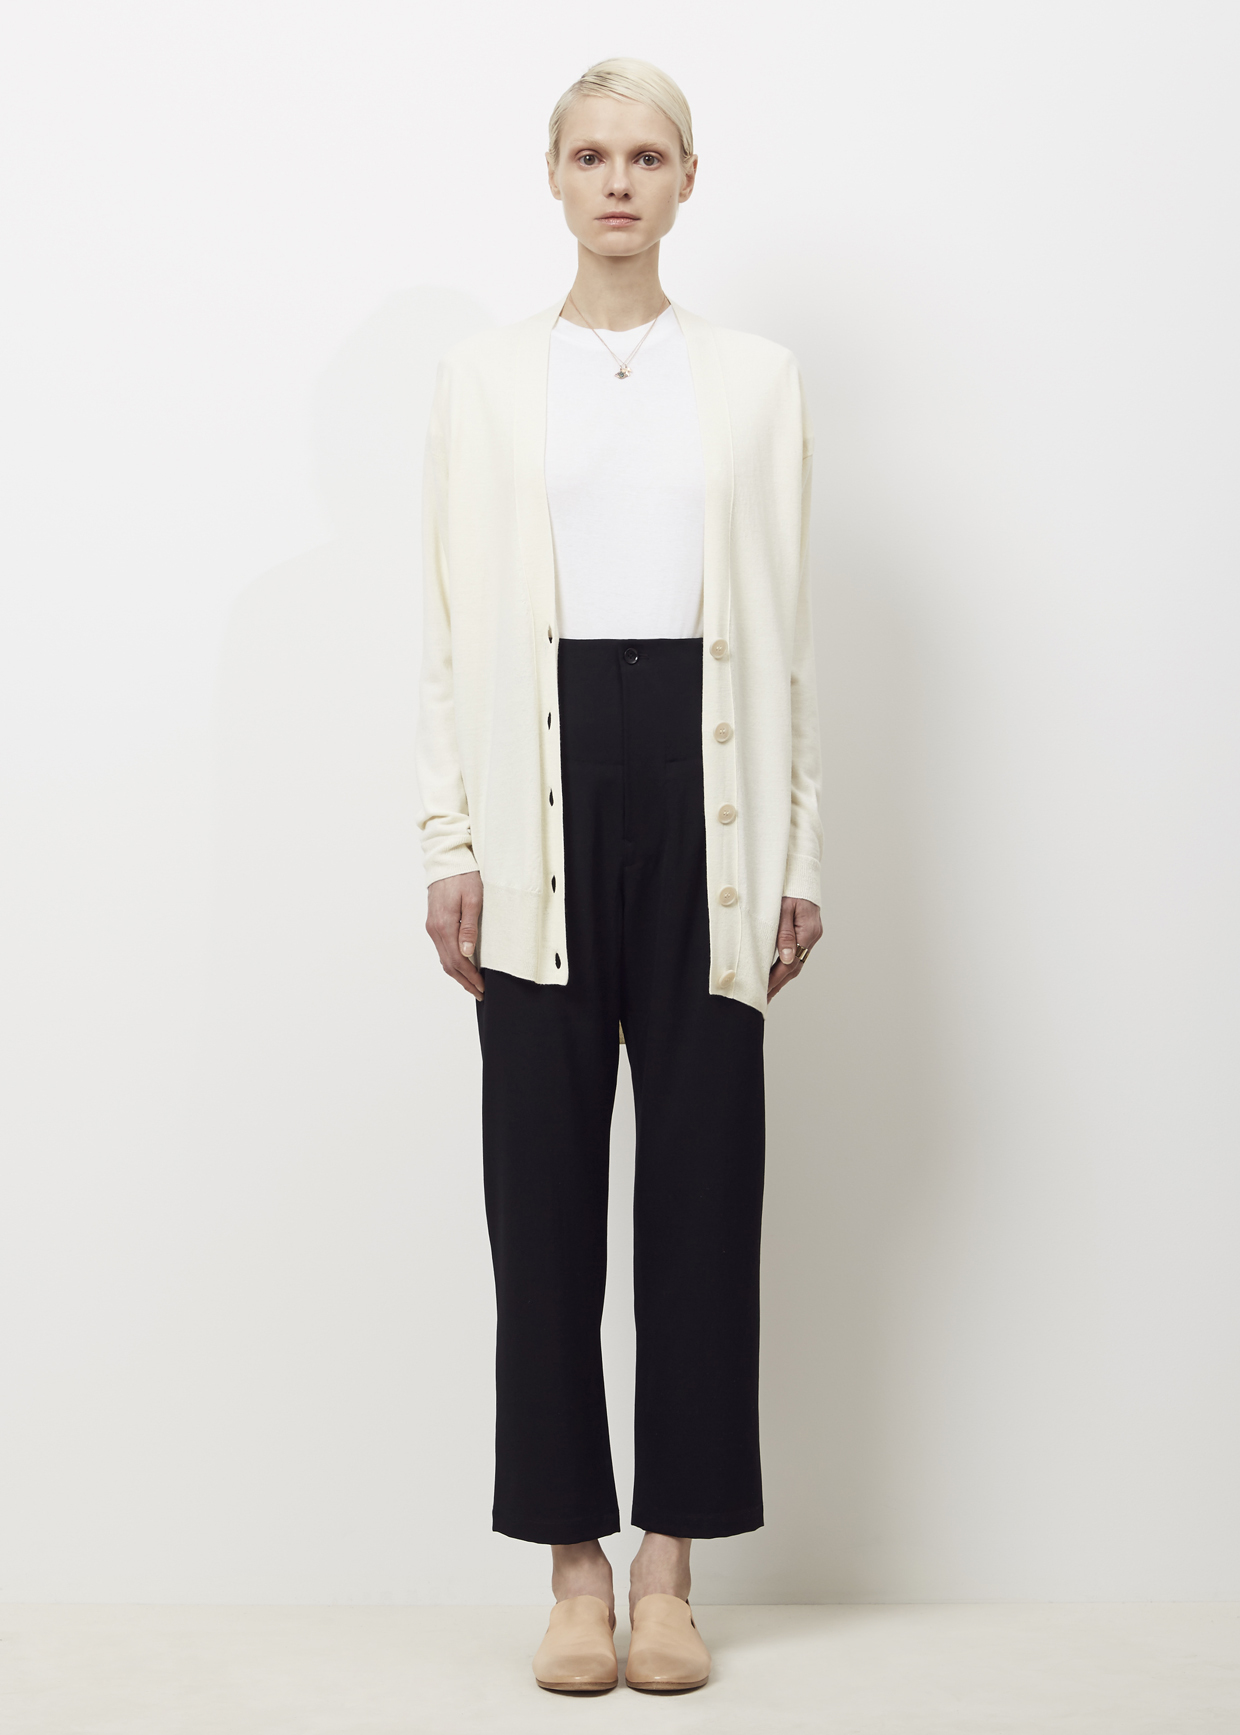 Mm6 by maison martin margiela Off White Long Cardigan in White | Lyst